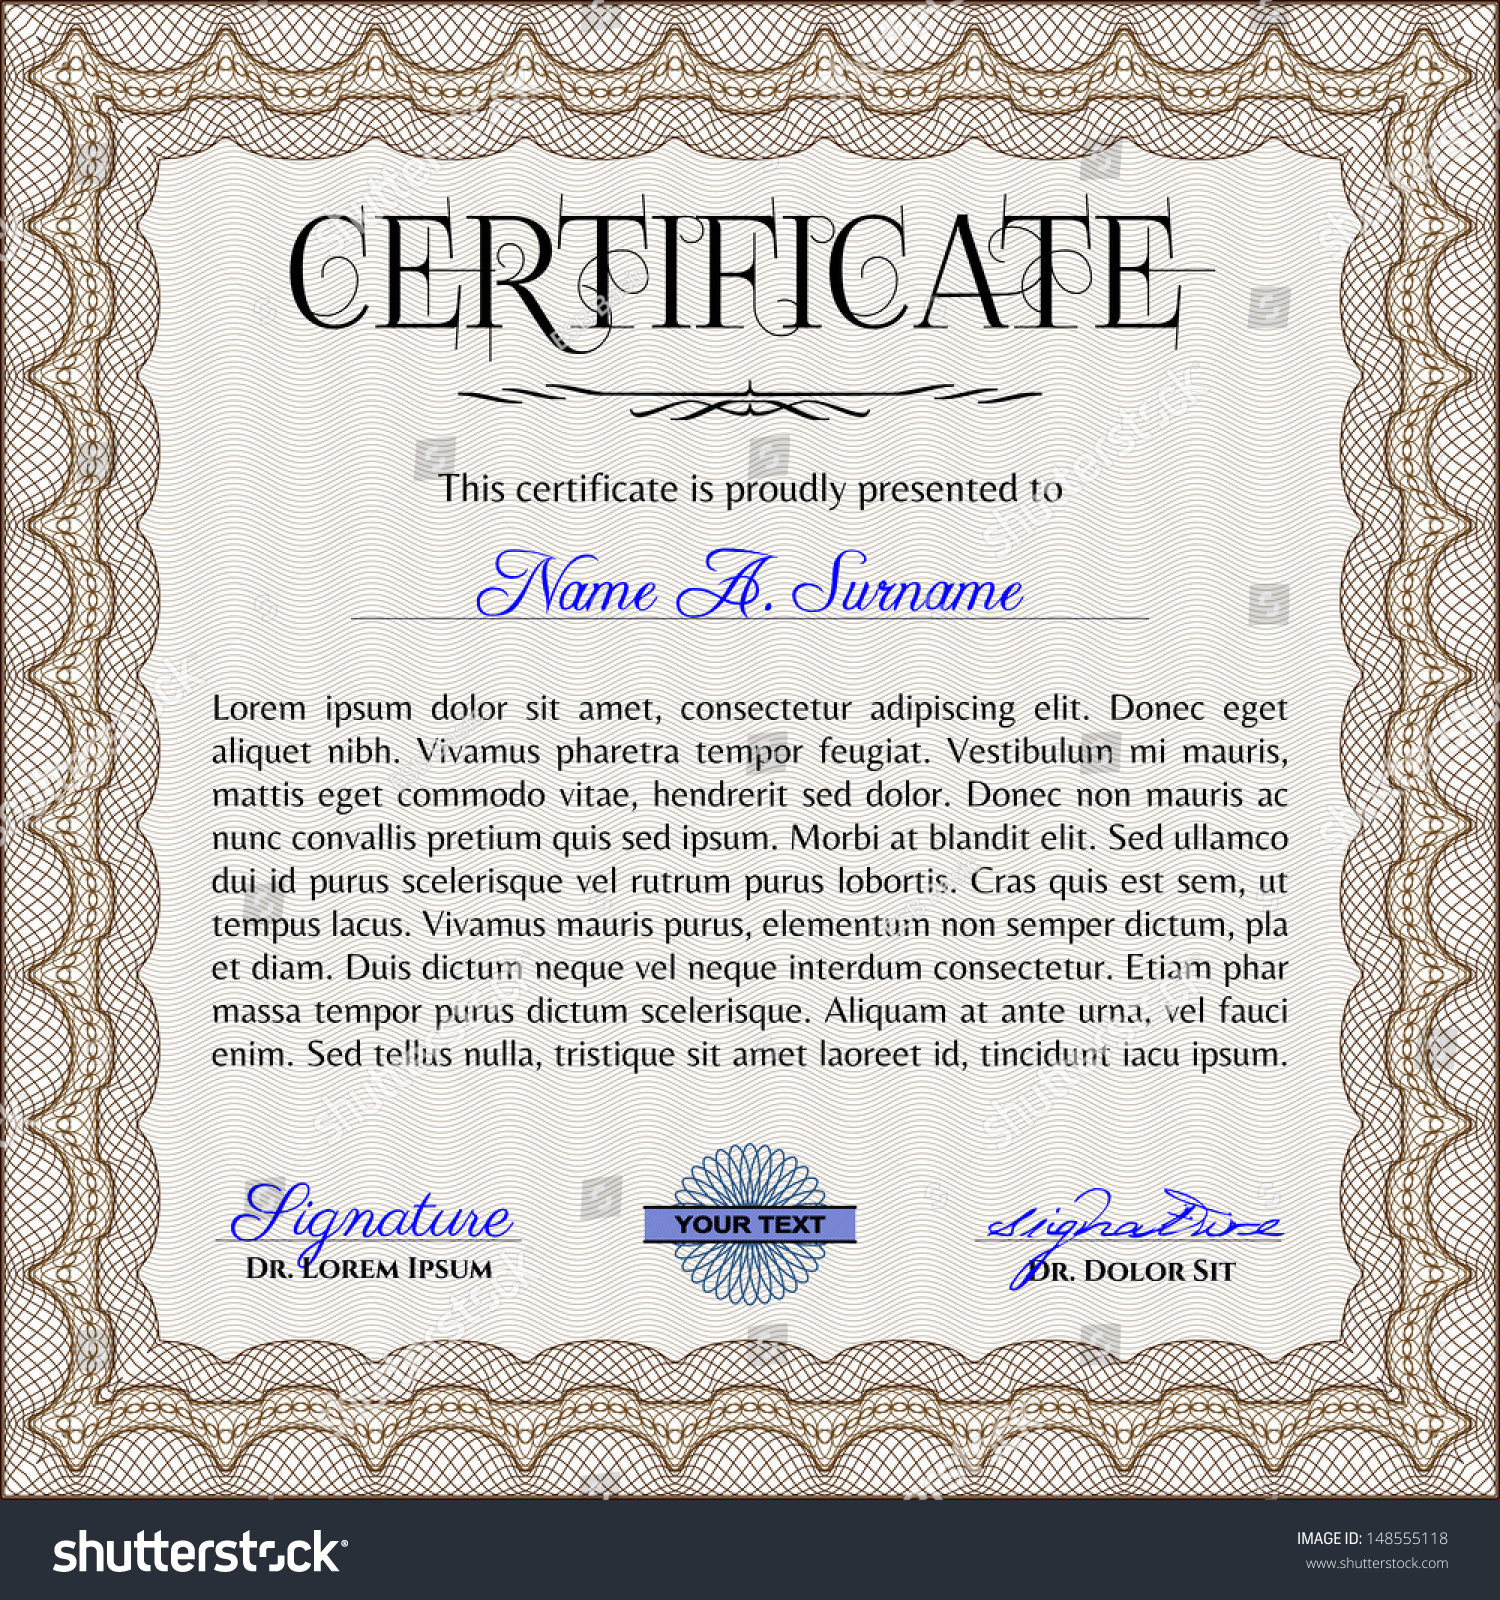 Certificate template with sample text